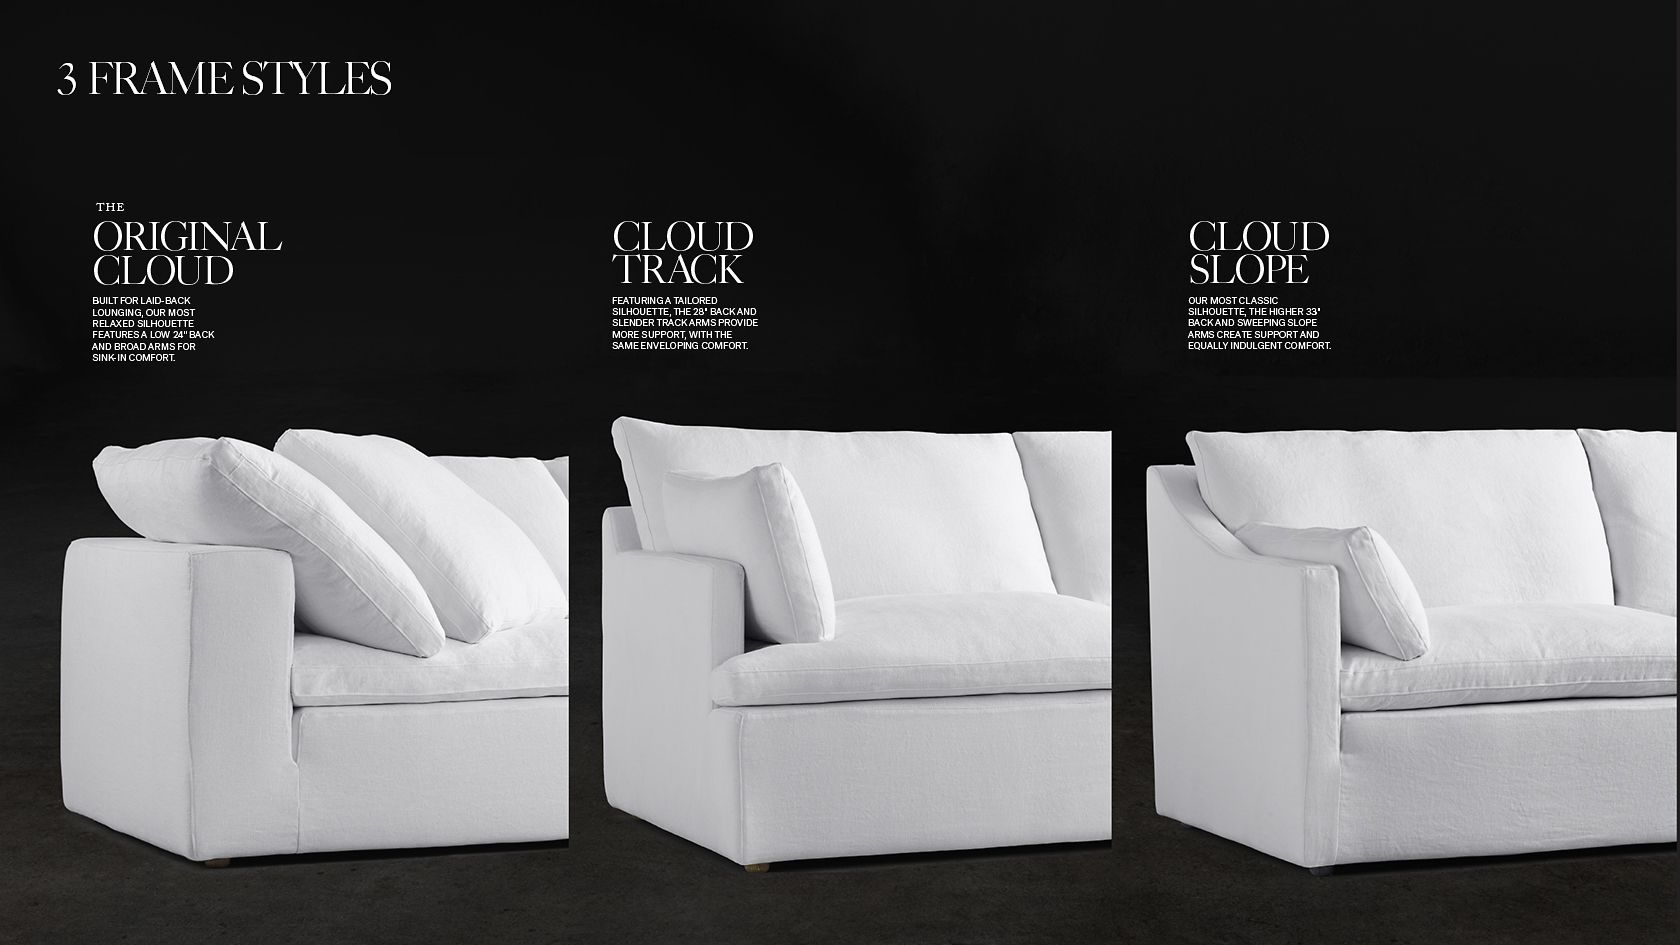 Introducing The Cloud Collection